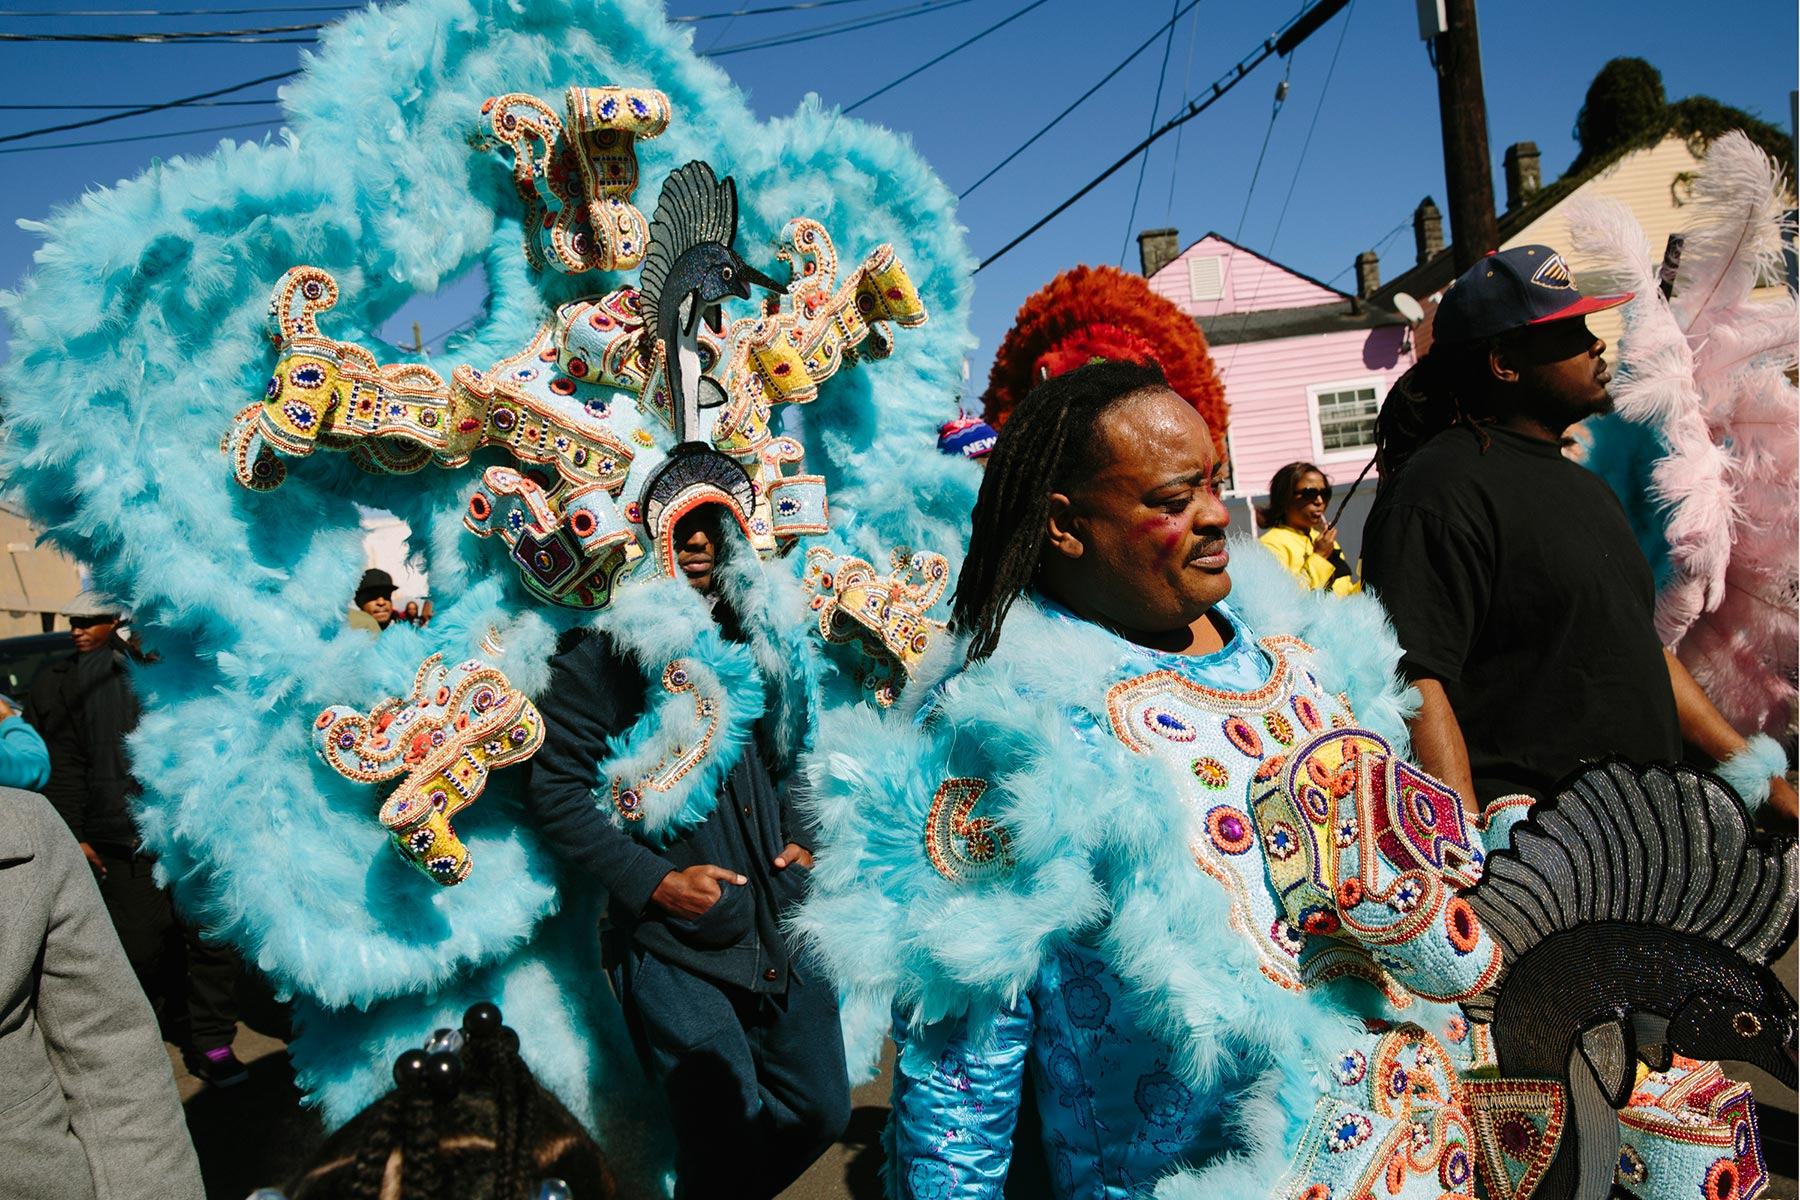 Mardi Gras 2016 New Orleans | Search Results | Calendar 2015